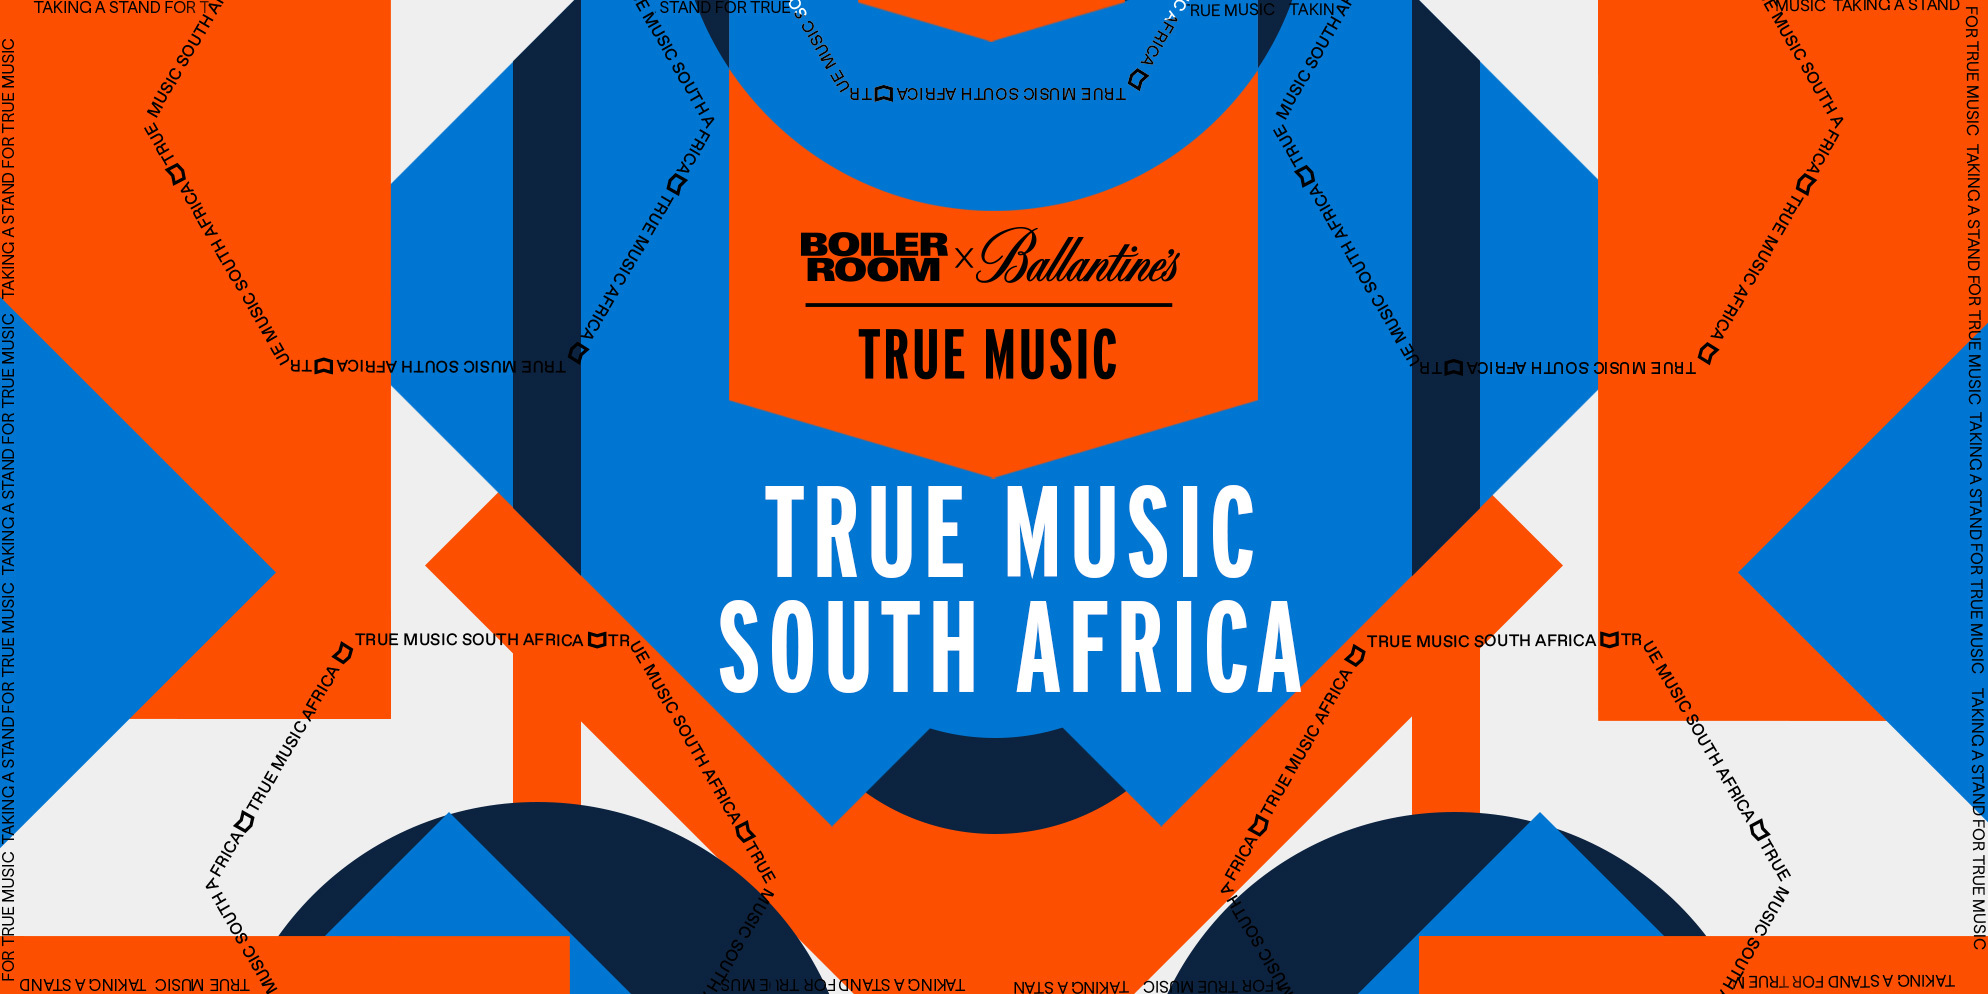 Boiler Room x Ballantine's | True Music South Africa